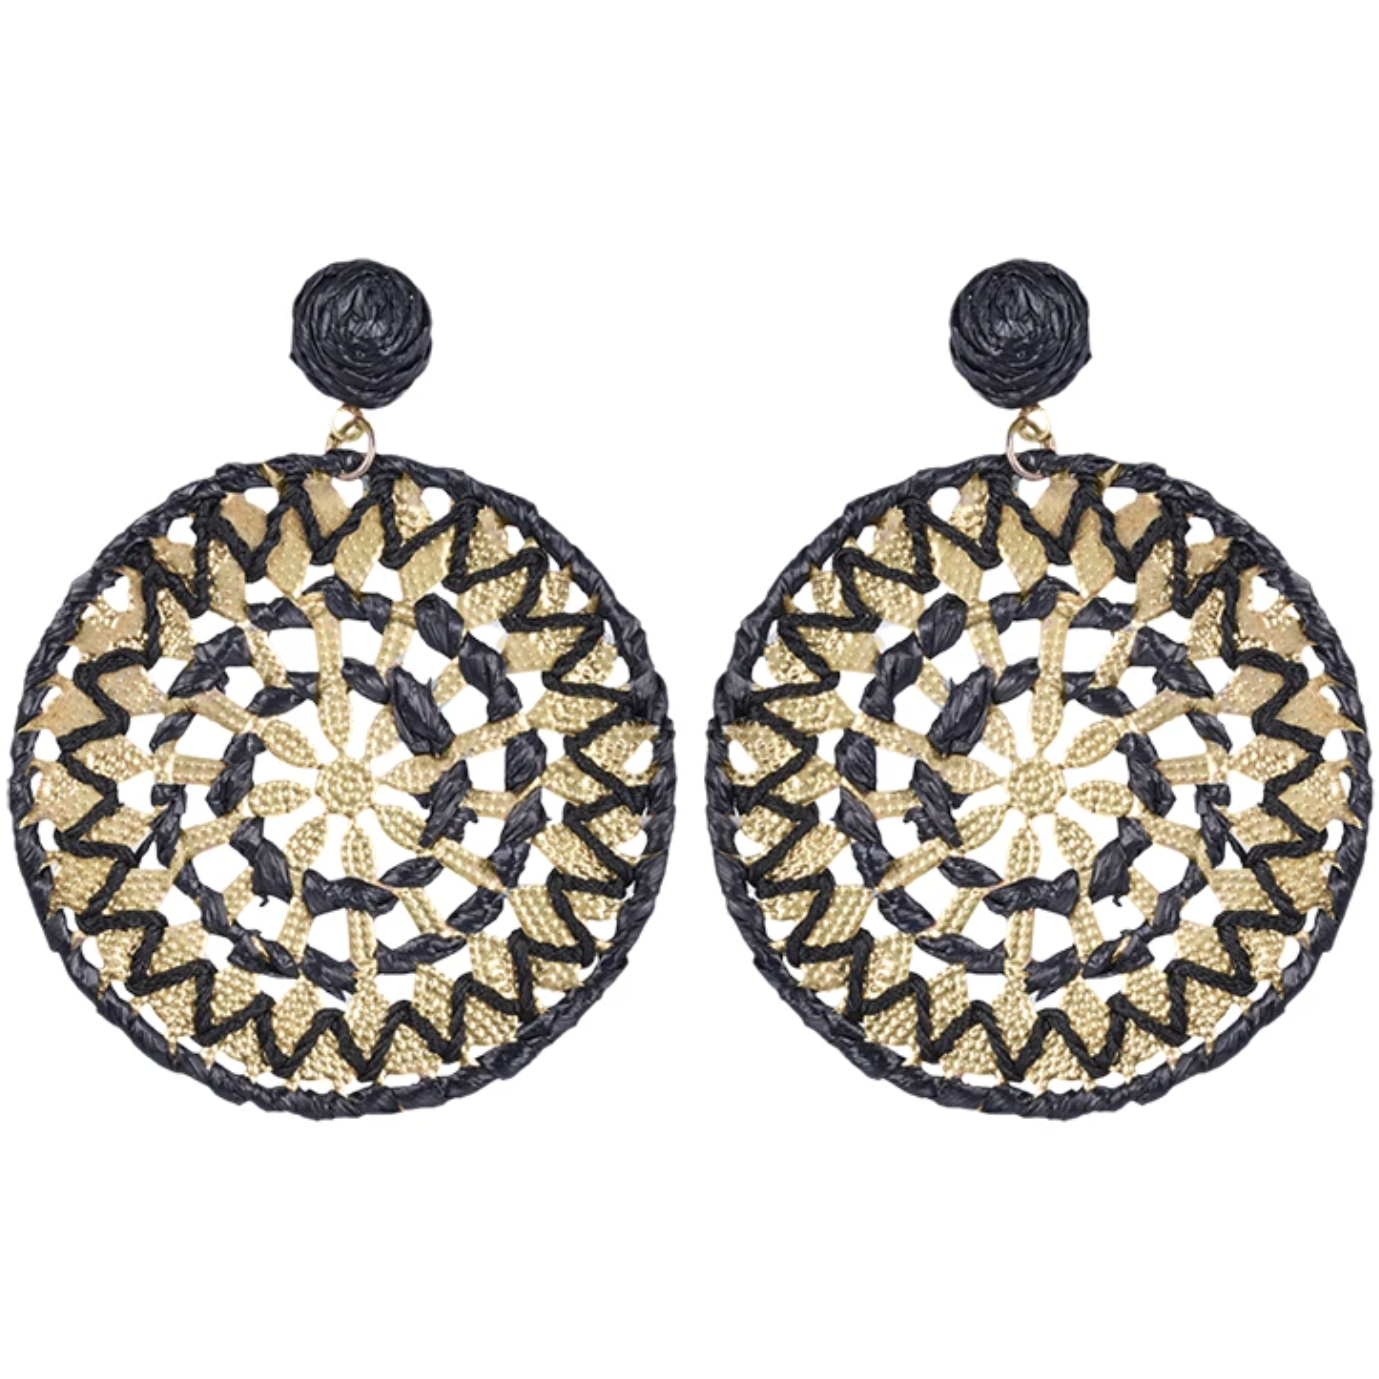 eb&ive Masai Circular Earrings in Black